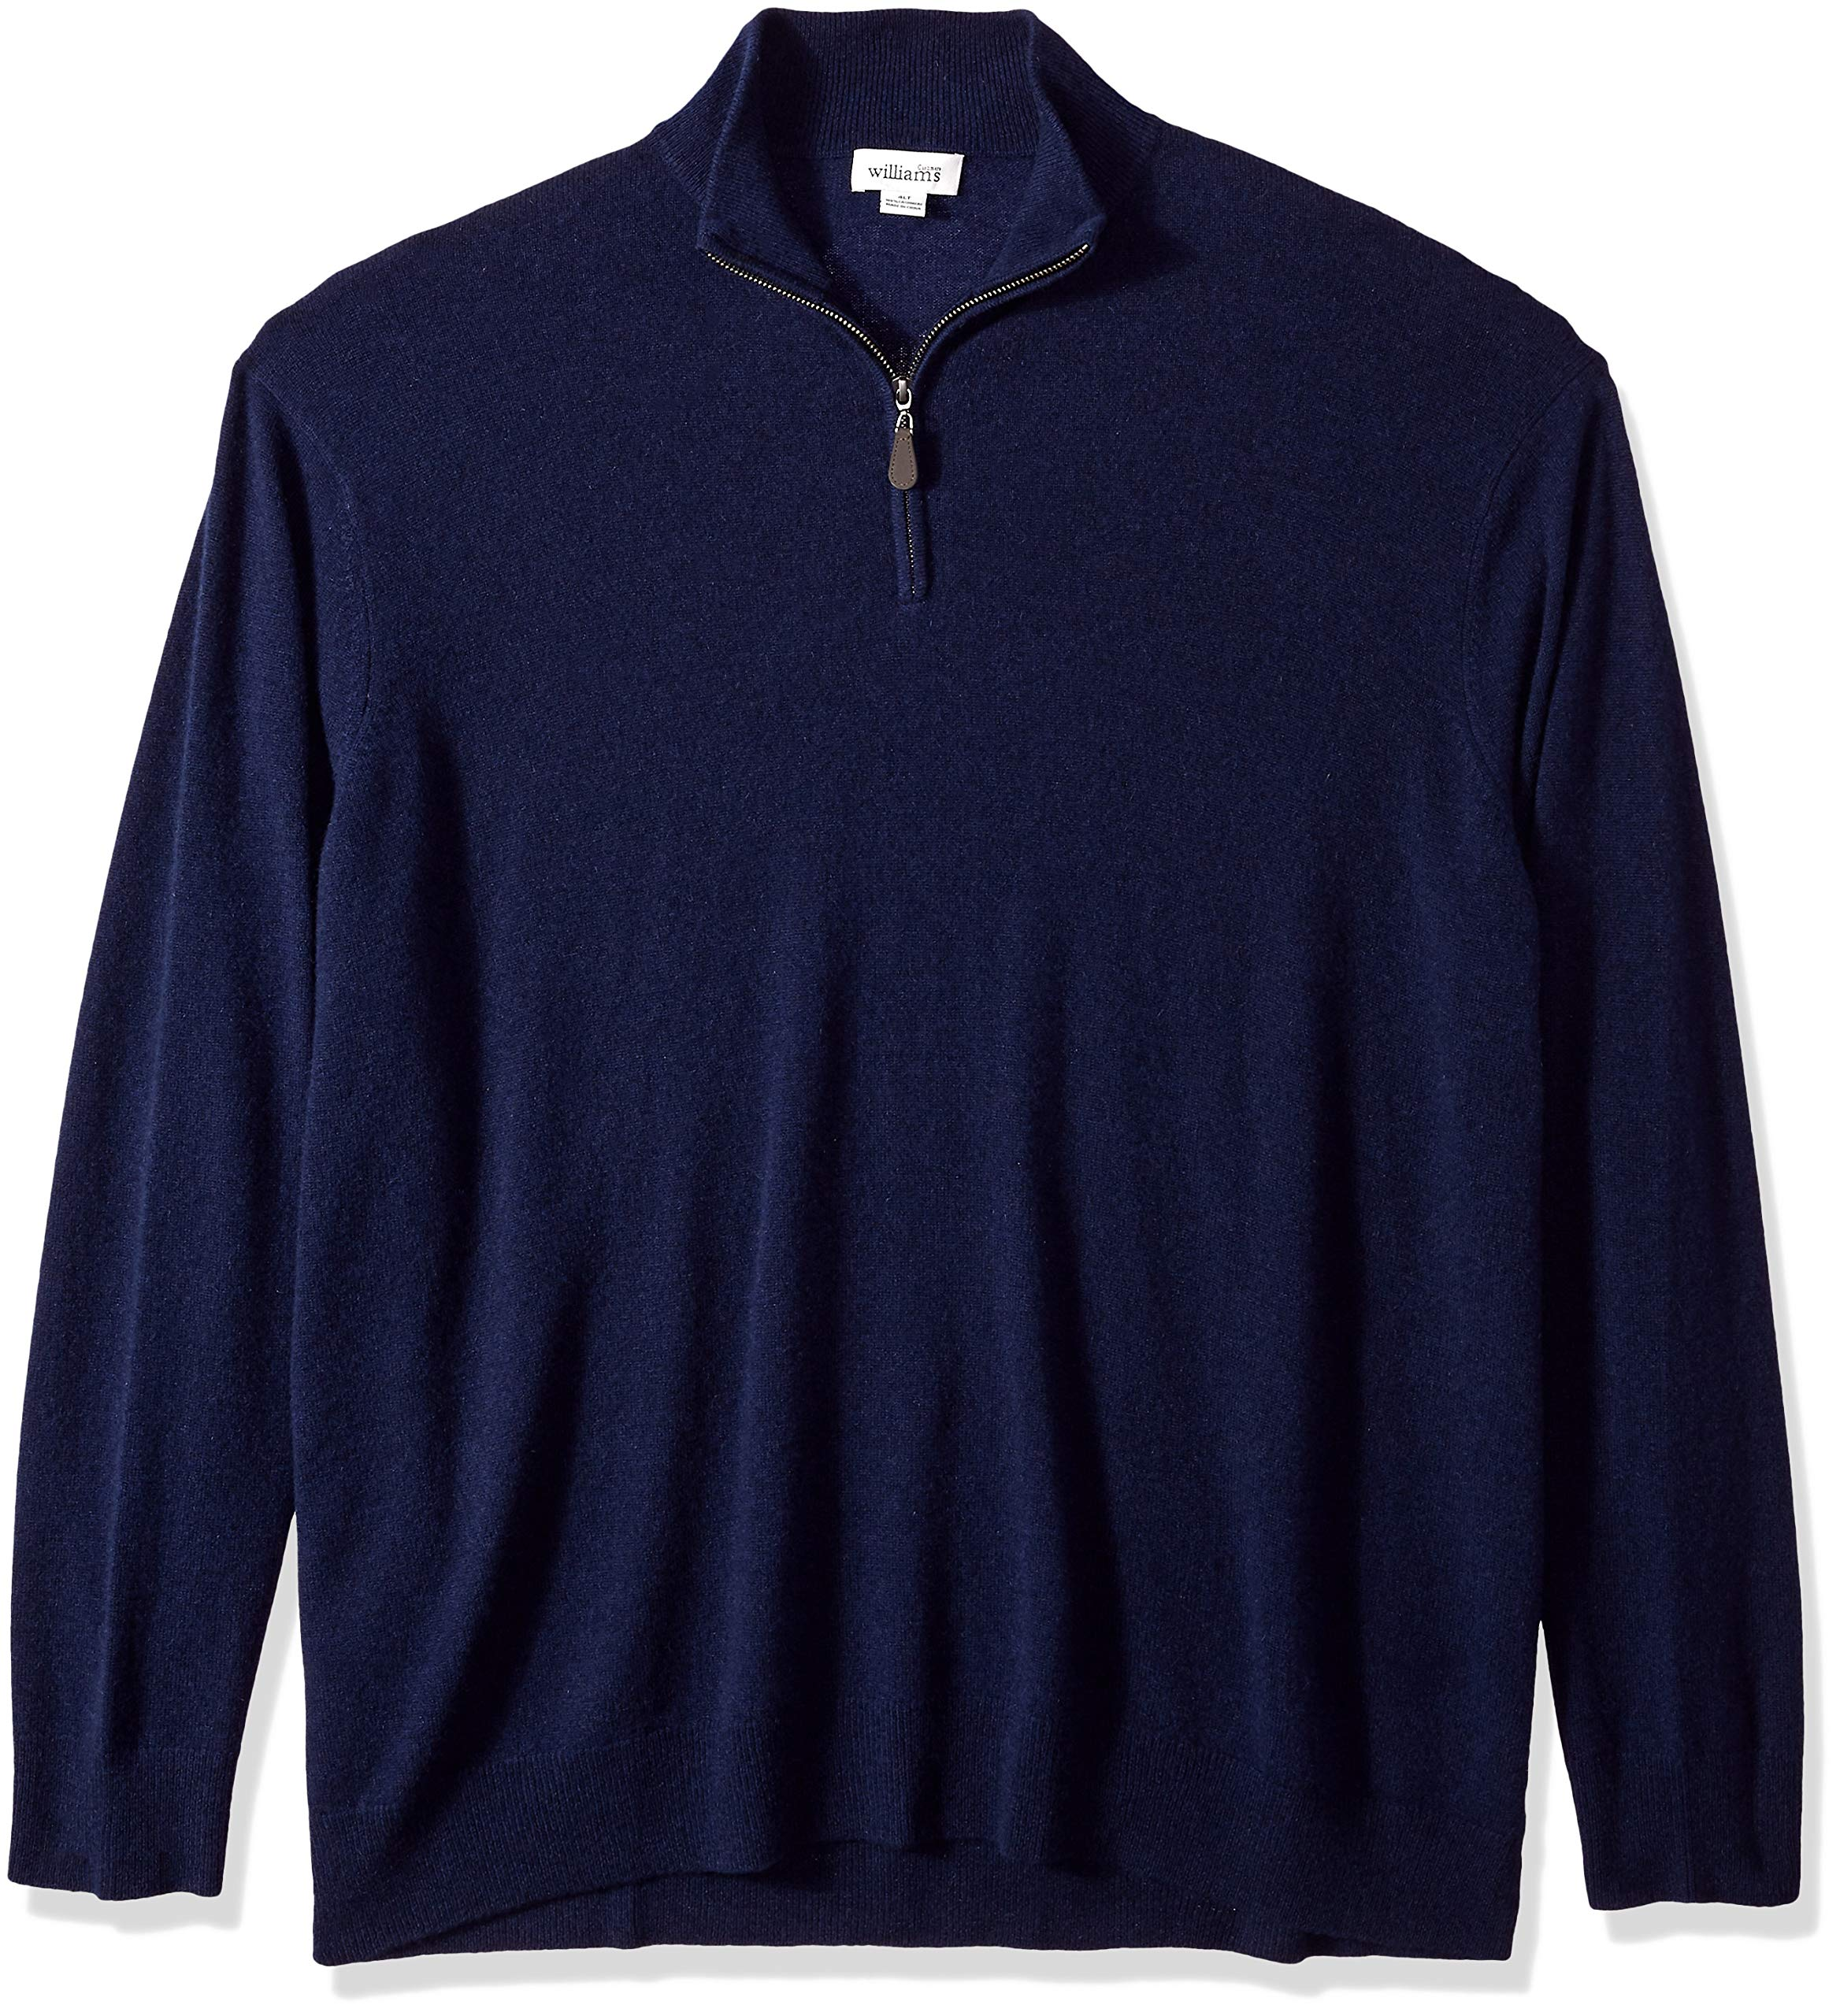 Williams Cashmere Men's Big and Tall 100% Cashmere Mock Neck Pullover Haff Zip Sweater, Navy, XT